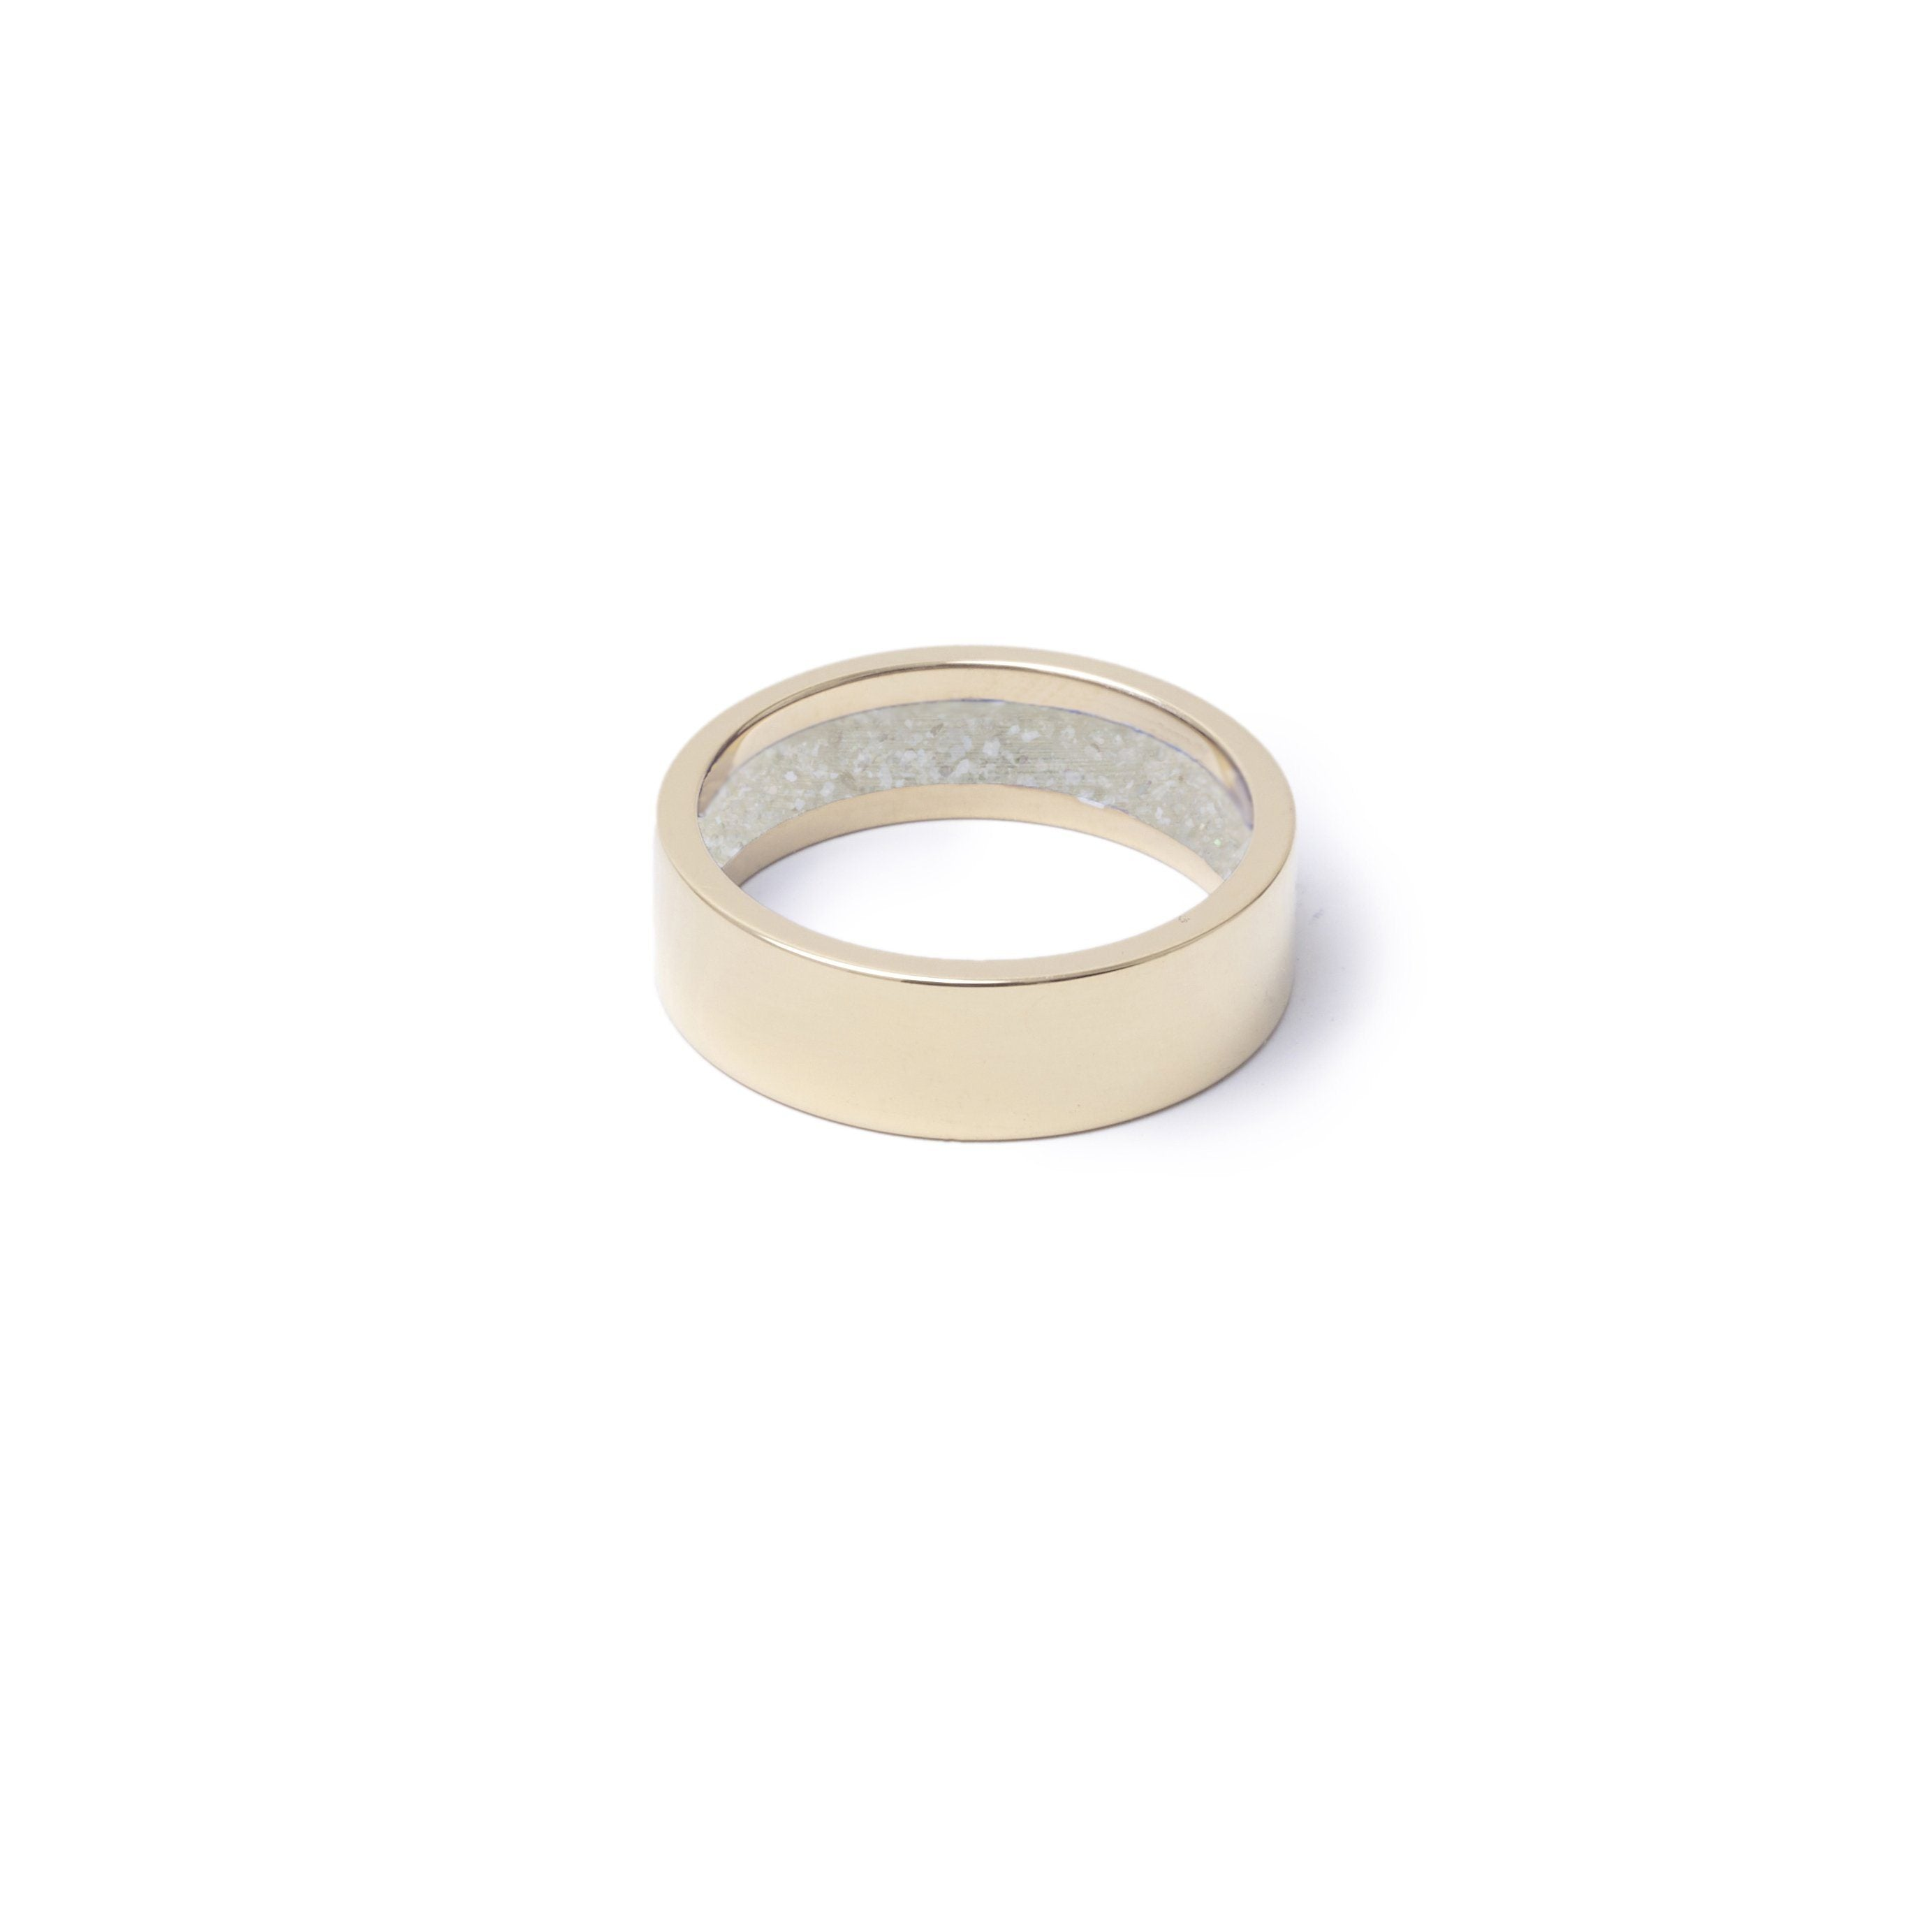 Everence Ring, 10k Yellow Gold everence.life 6mm Pearl